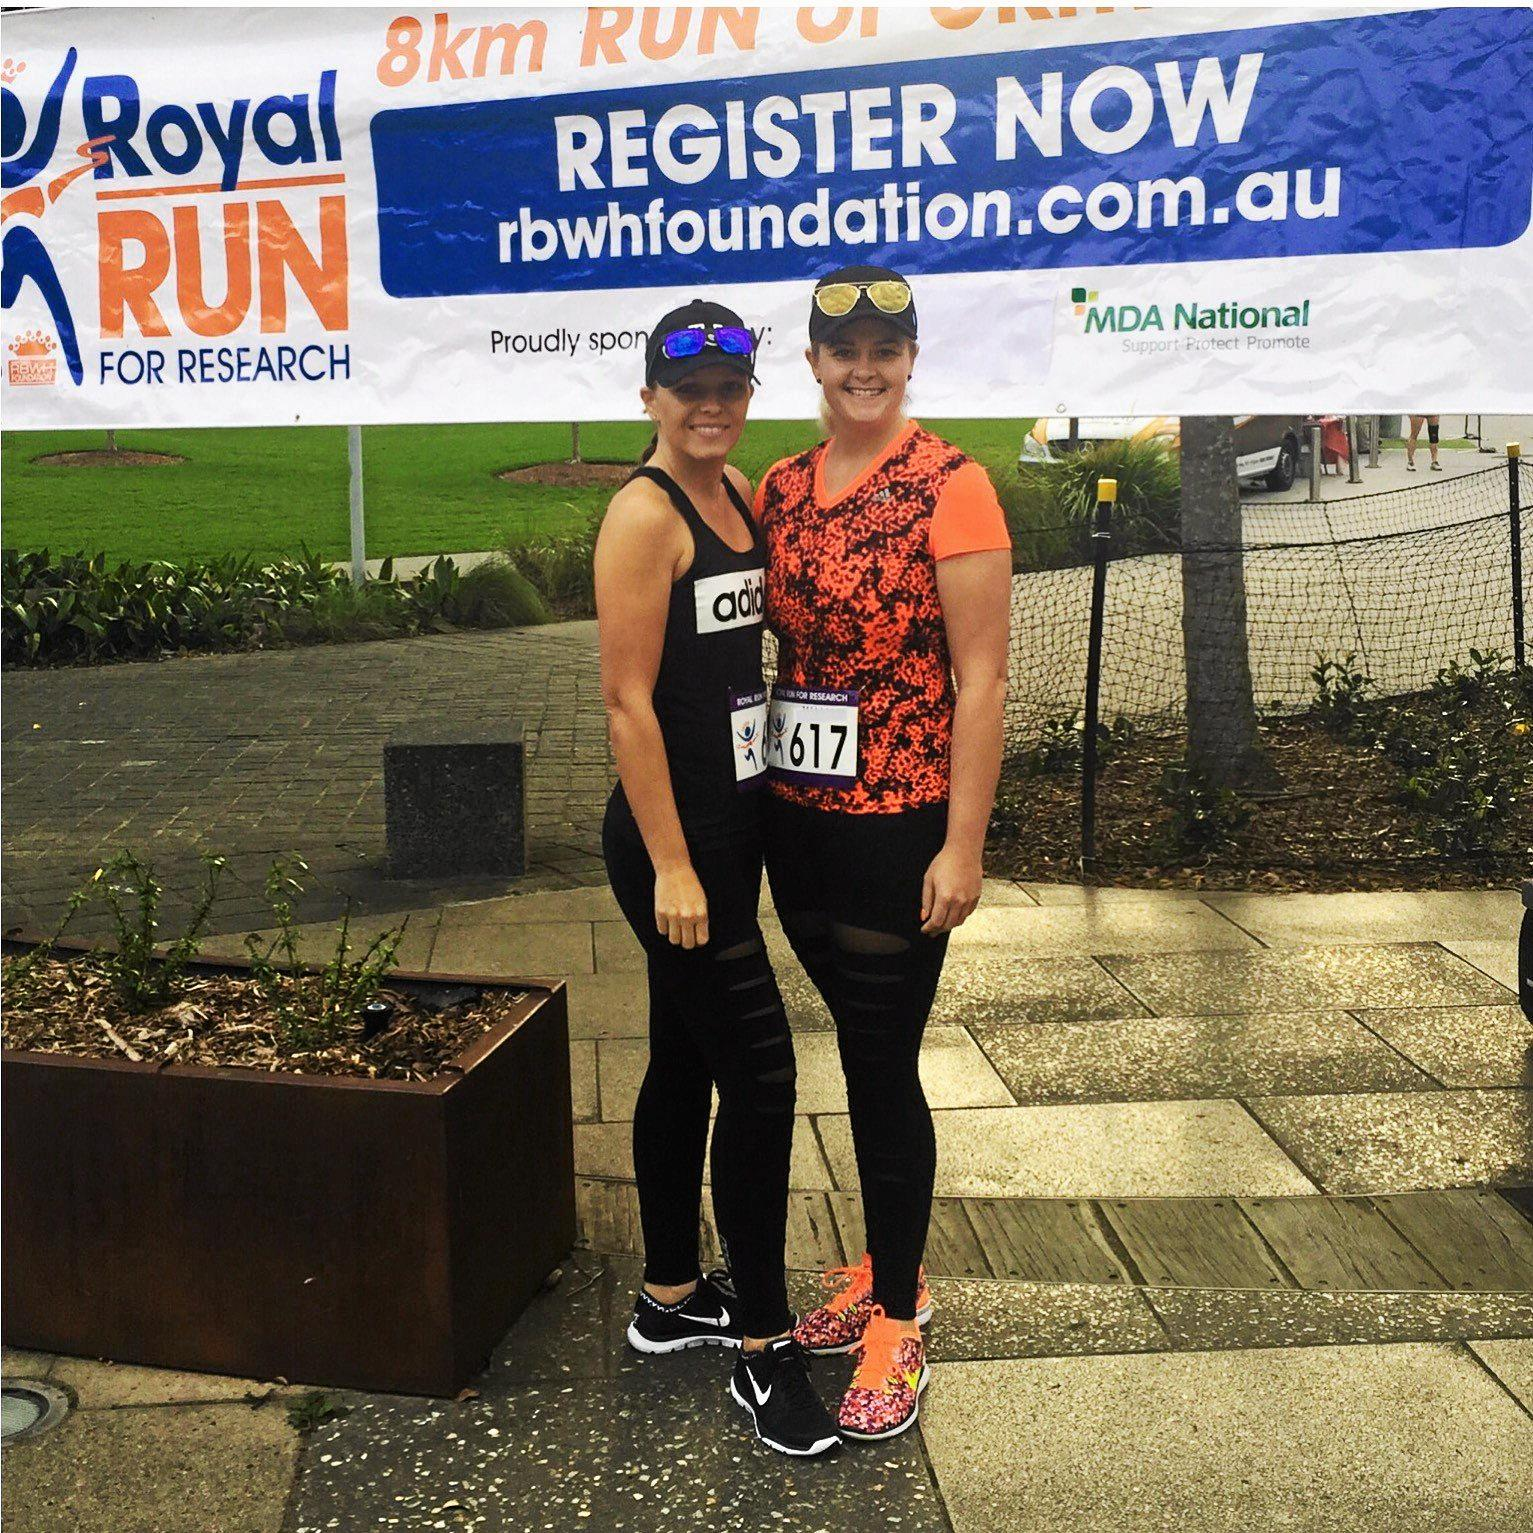 Tamara Dooley and Laurena Furber take part in the Royal Run for Research to raise money for the hospital where their father Trevor Heyes has been recovering from a motorbike crash.